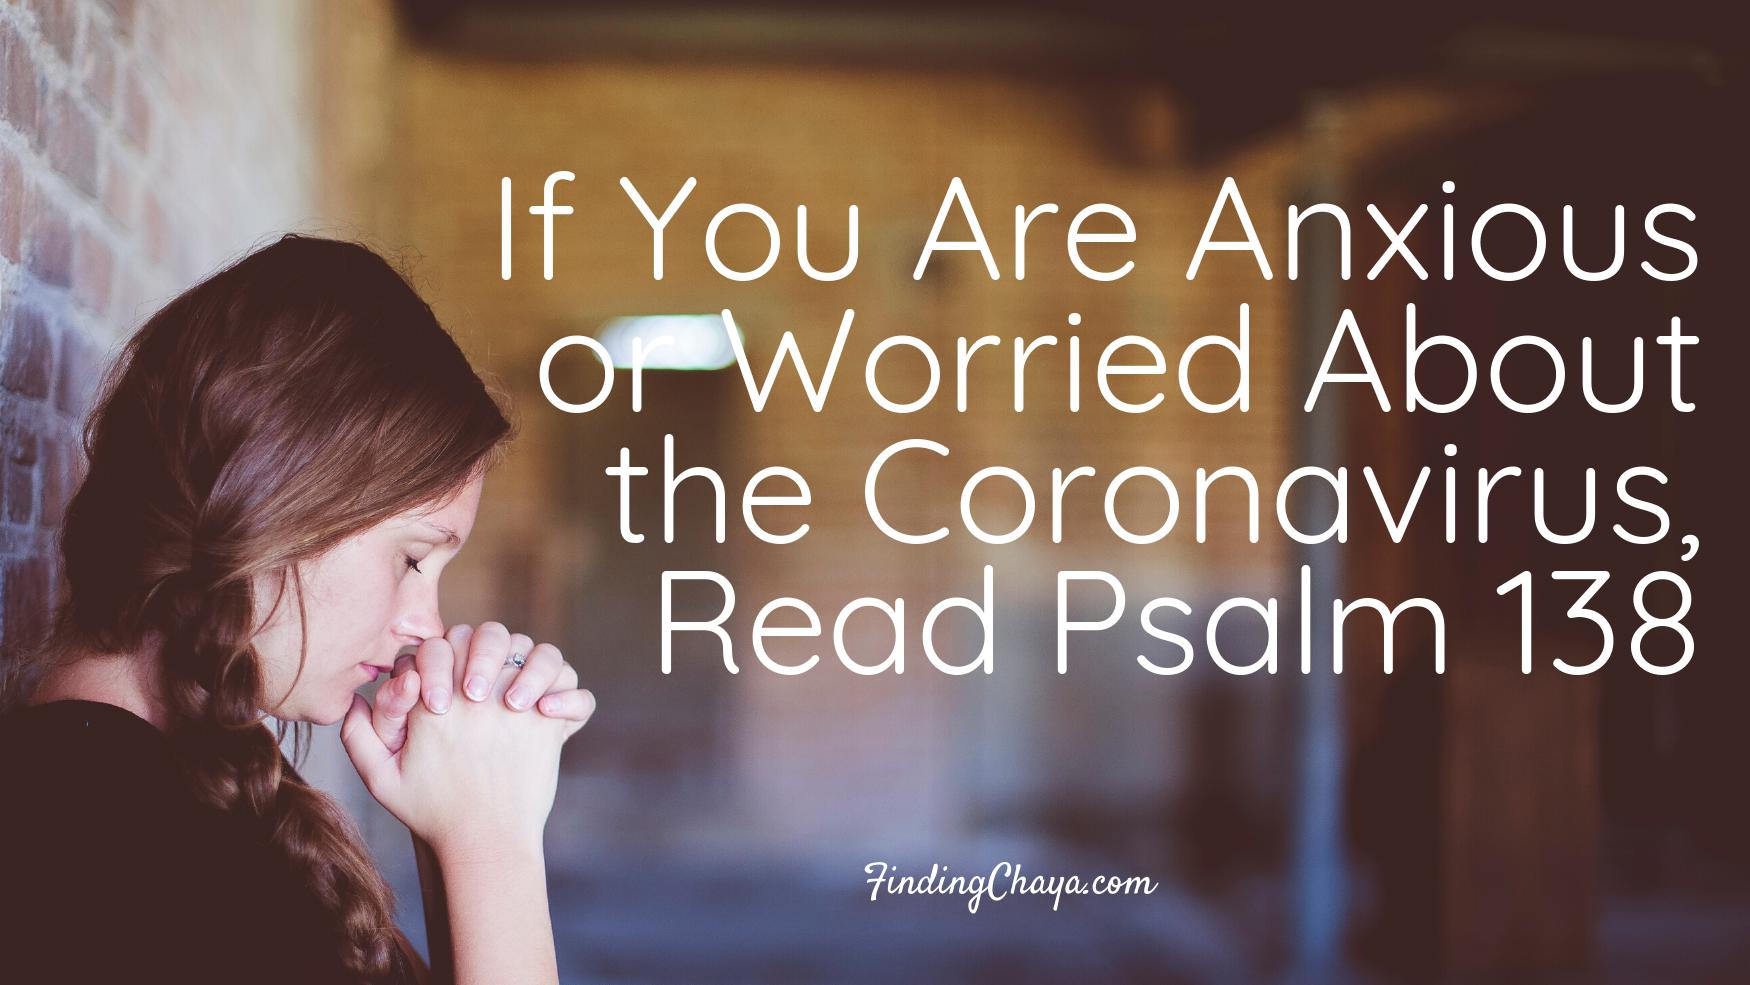 If You Are Anxious or Worried About Coronavirus, Read Psalm 138